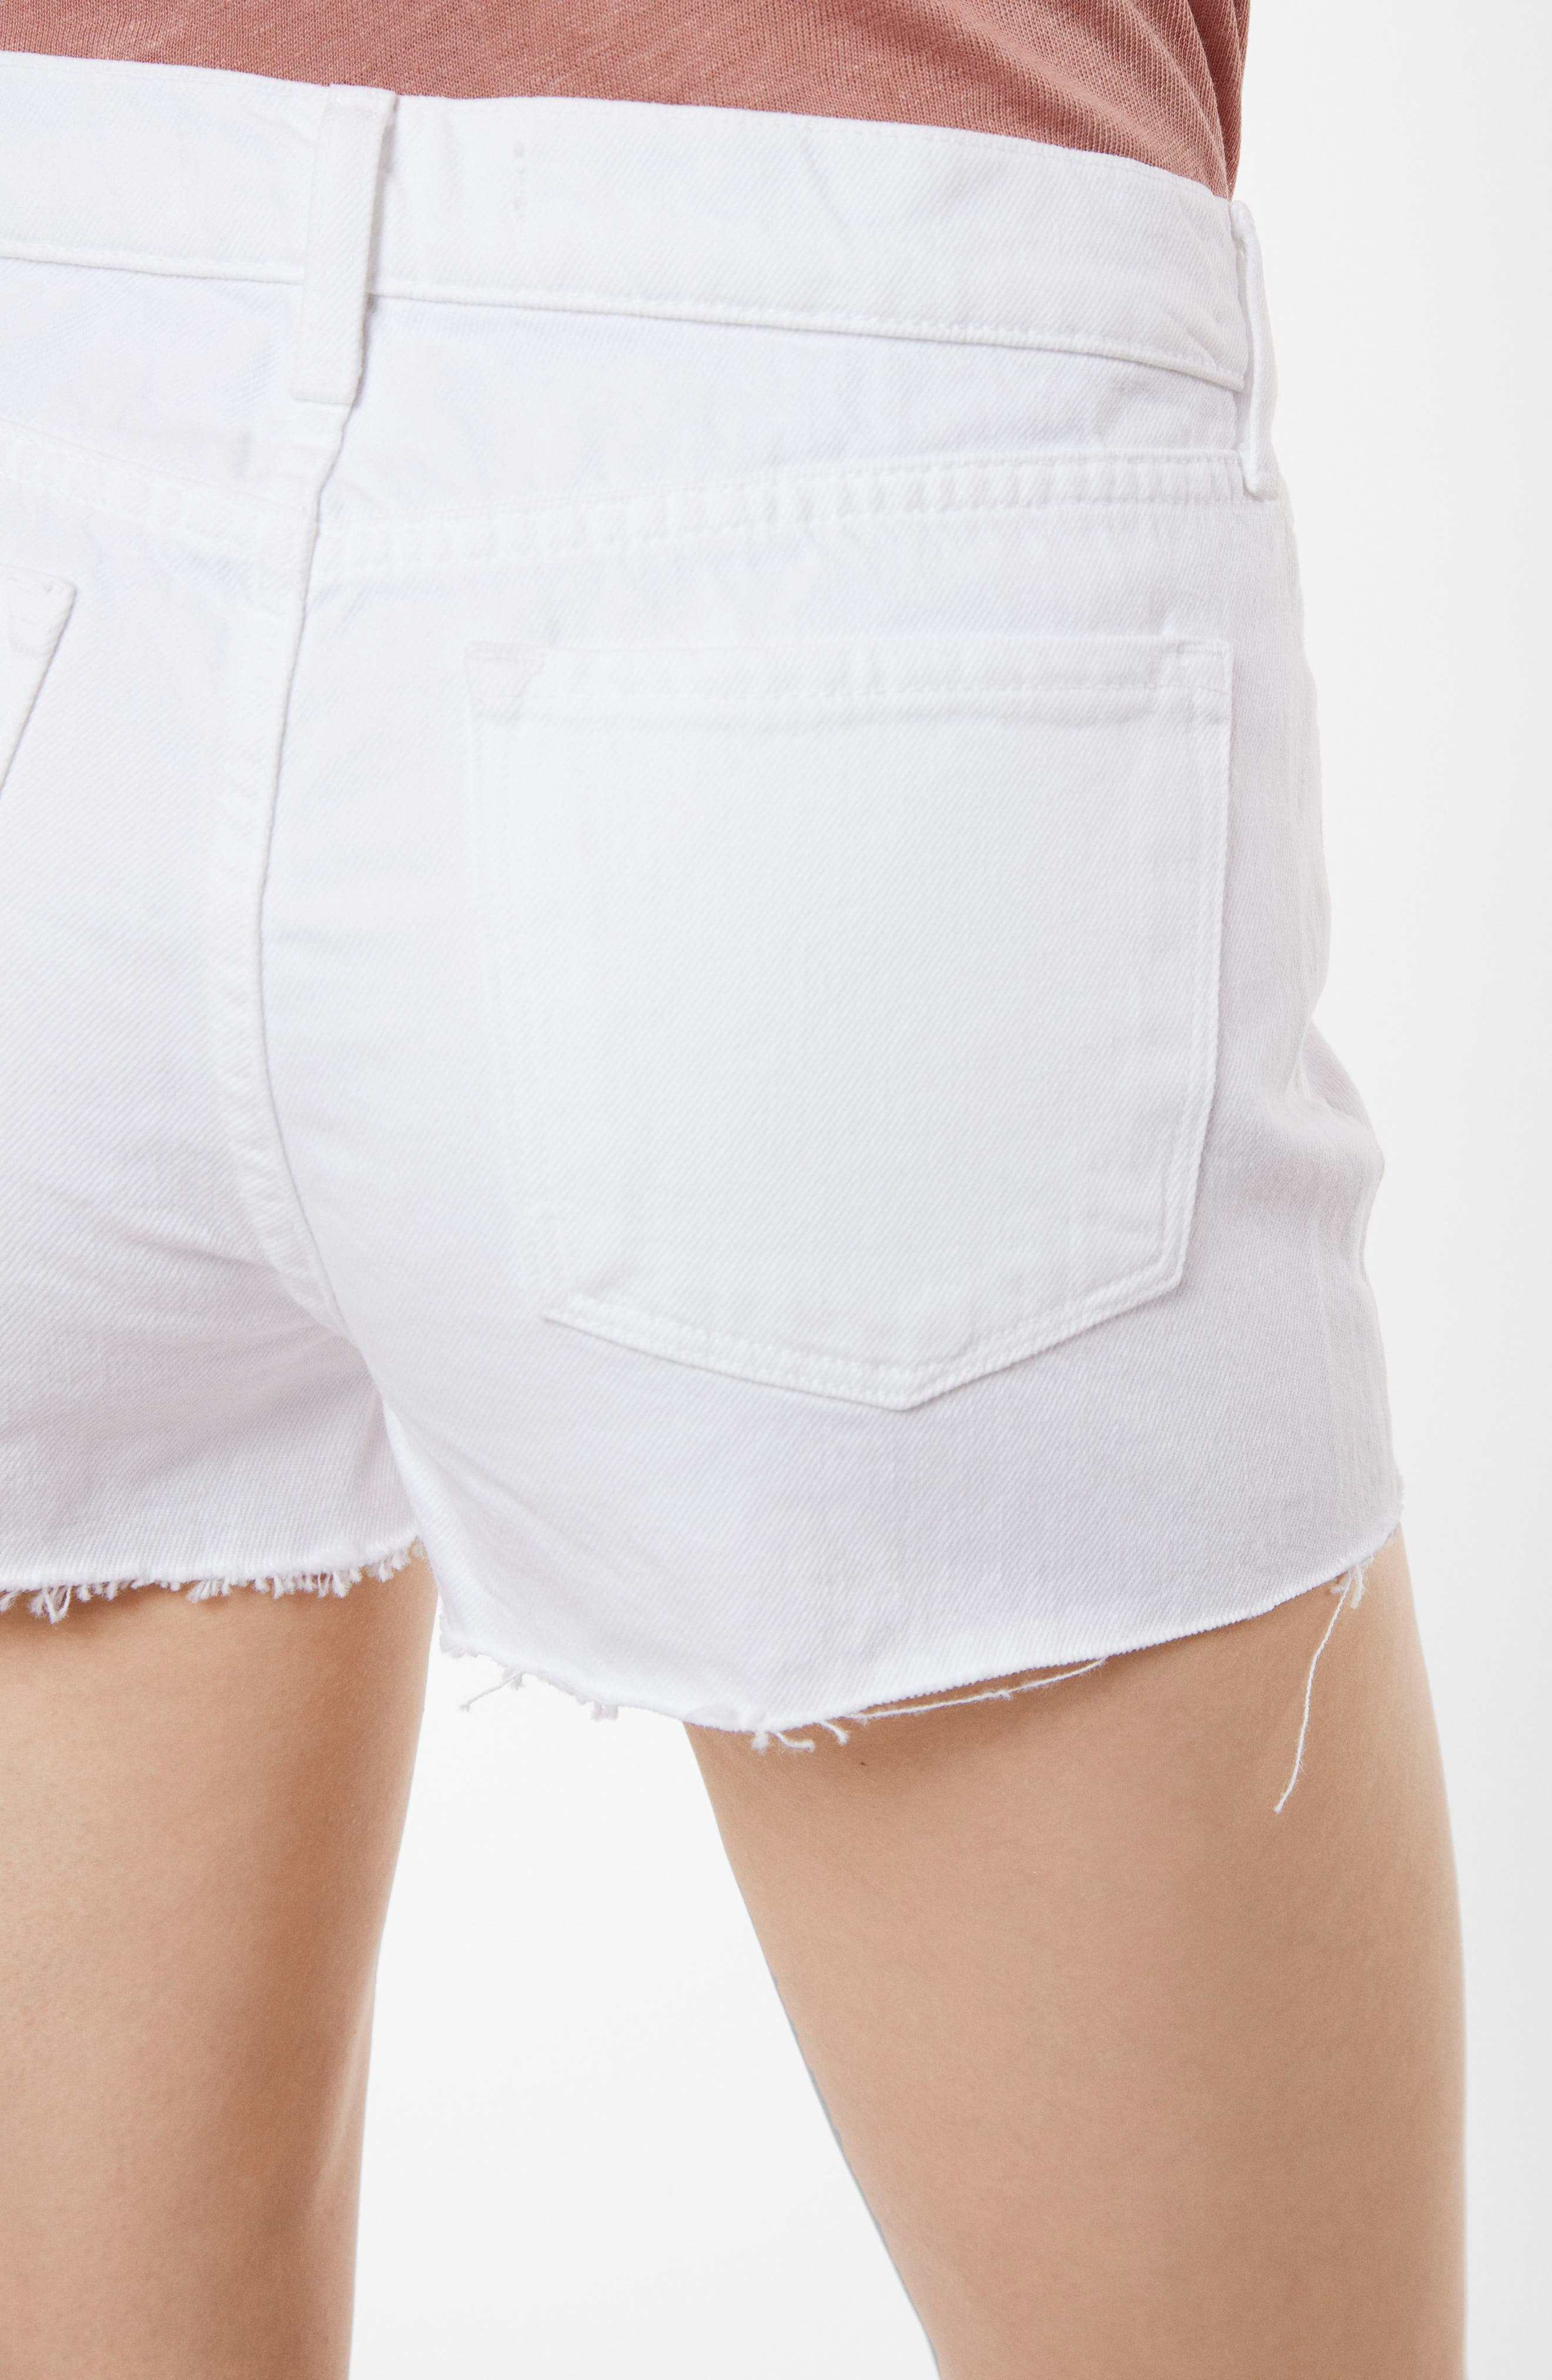 J BRAND,                             Raw Hem Denim Shorts,                             Alternate thumbnail 5, color,                             109